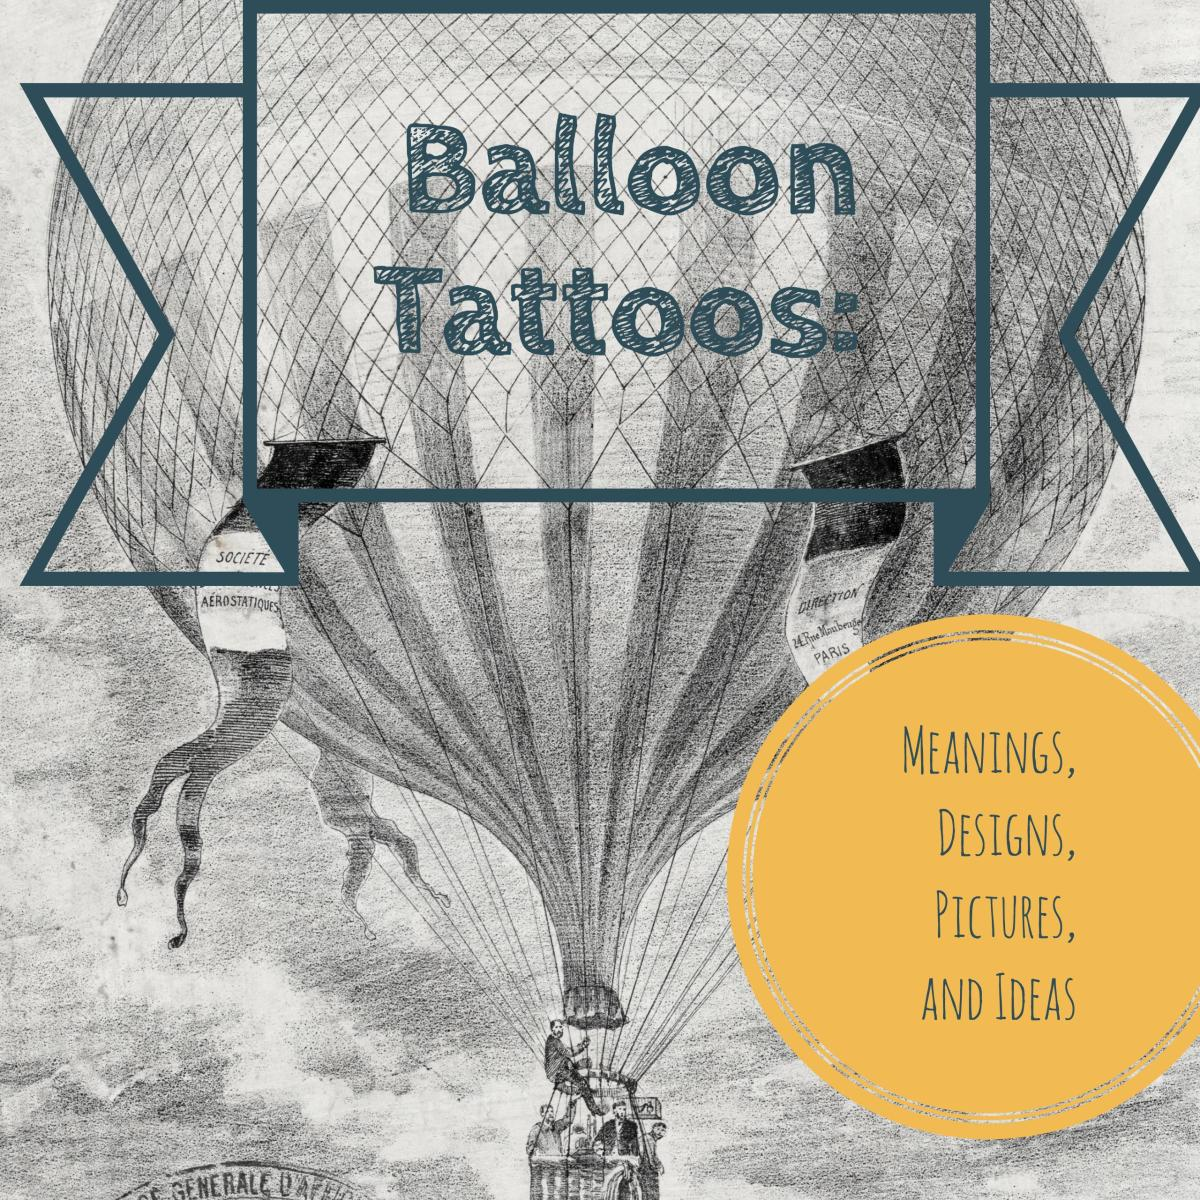 Balloon Tattoos Meanings Designs Pictures And Ideas Tatring